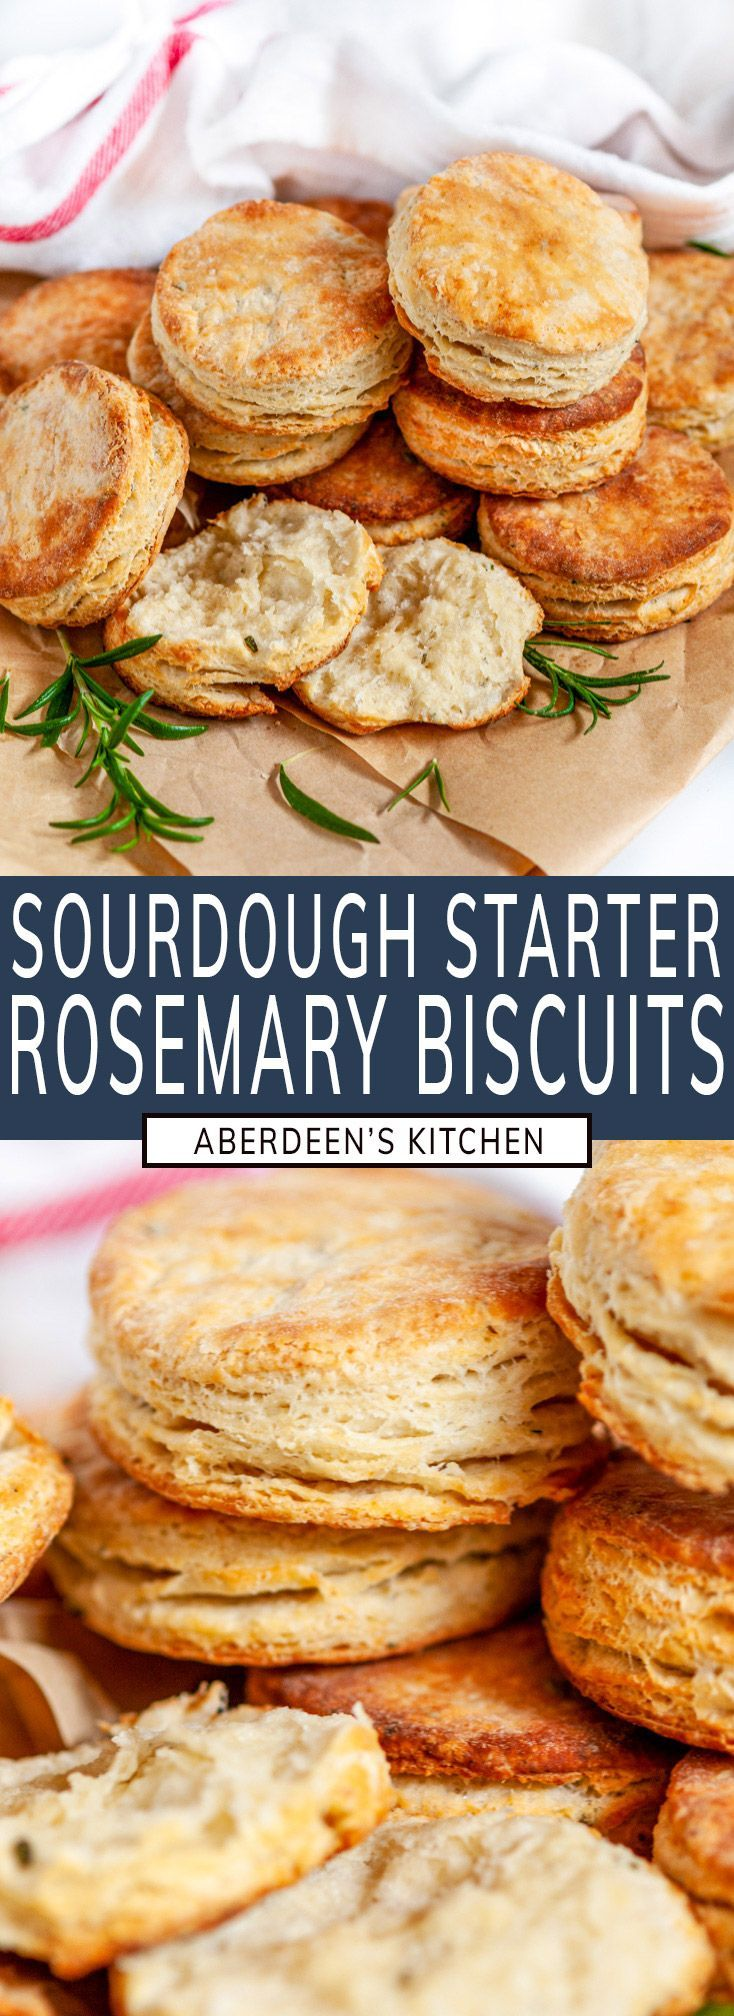 Leftover Sourdough Starter Rosemary Biscuits Aberdeen S Kitchen Recipe In 2020 Sourdough Starter Rosemary Biscuits Recipes